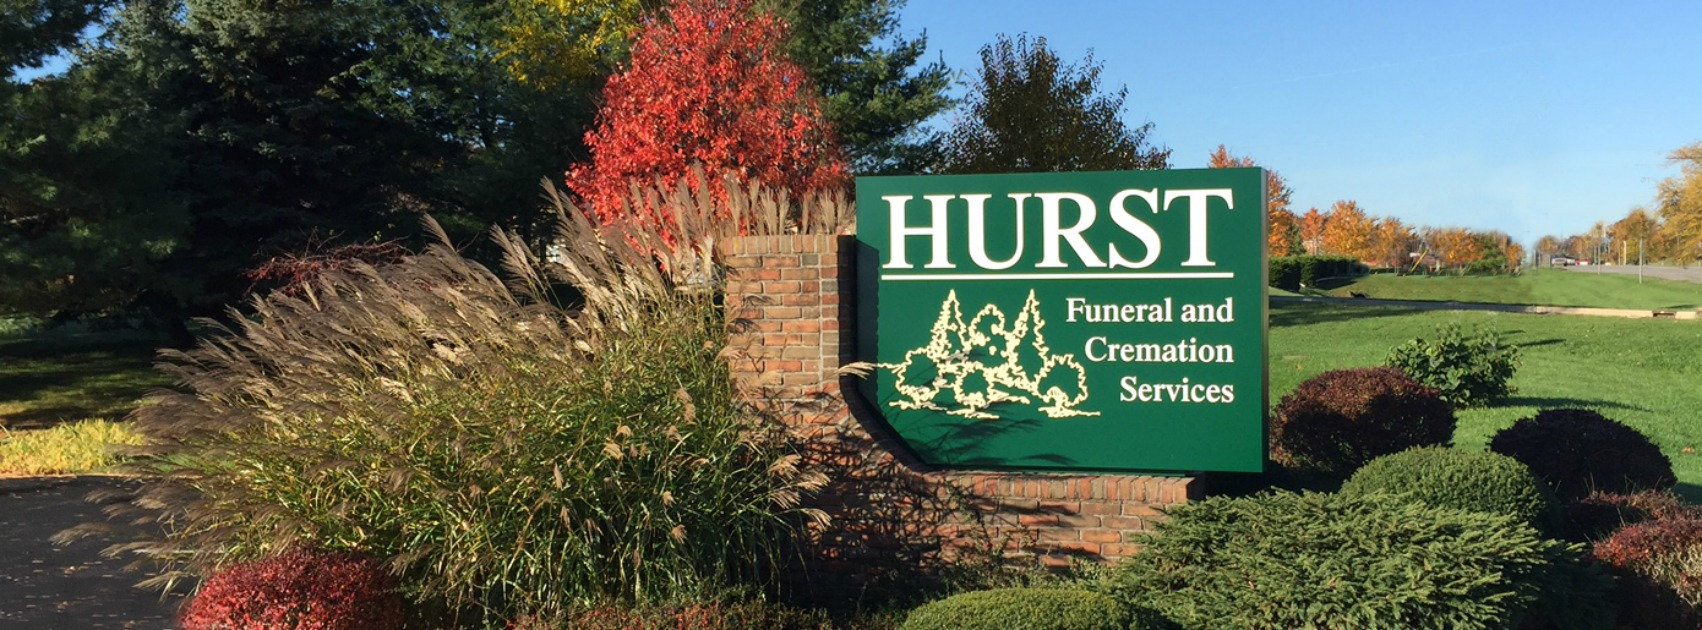 Hurst Funeral Home Sign